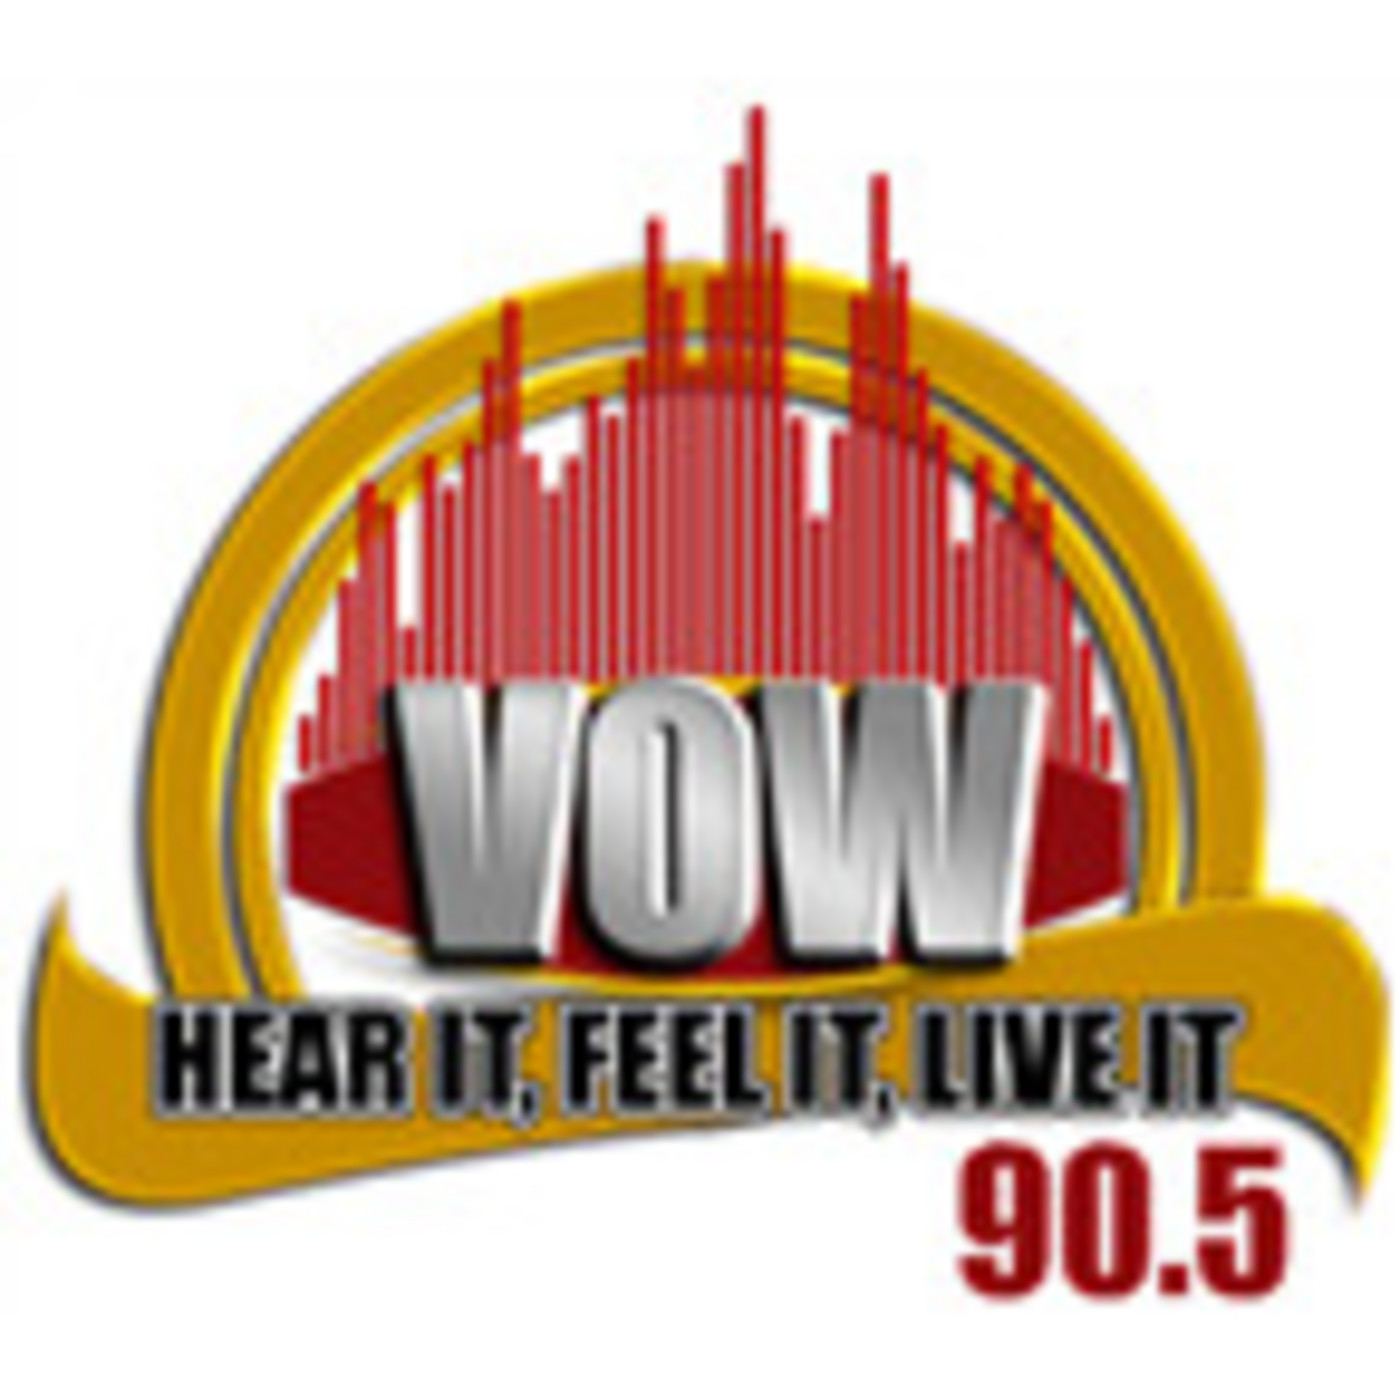 Voice of Wits